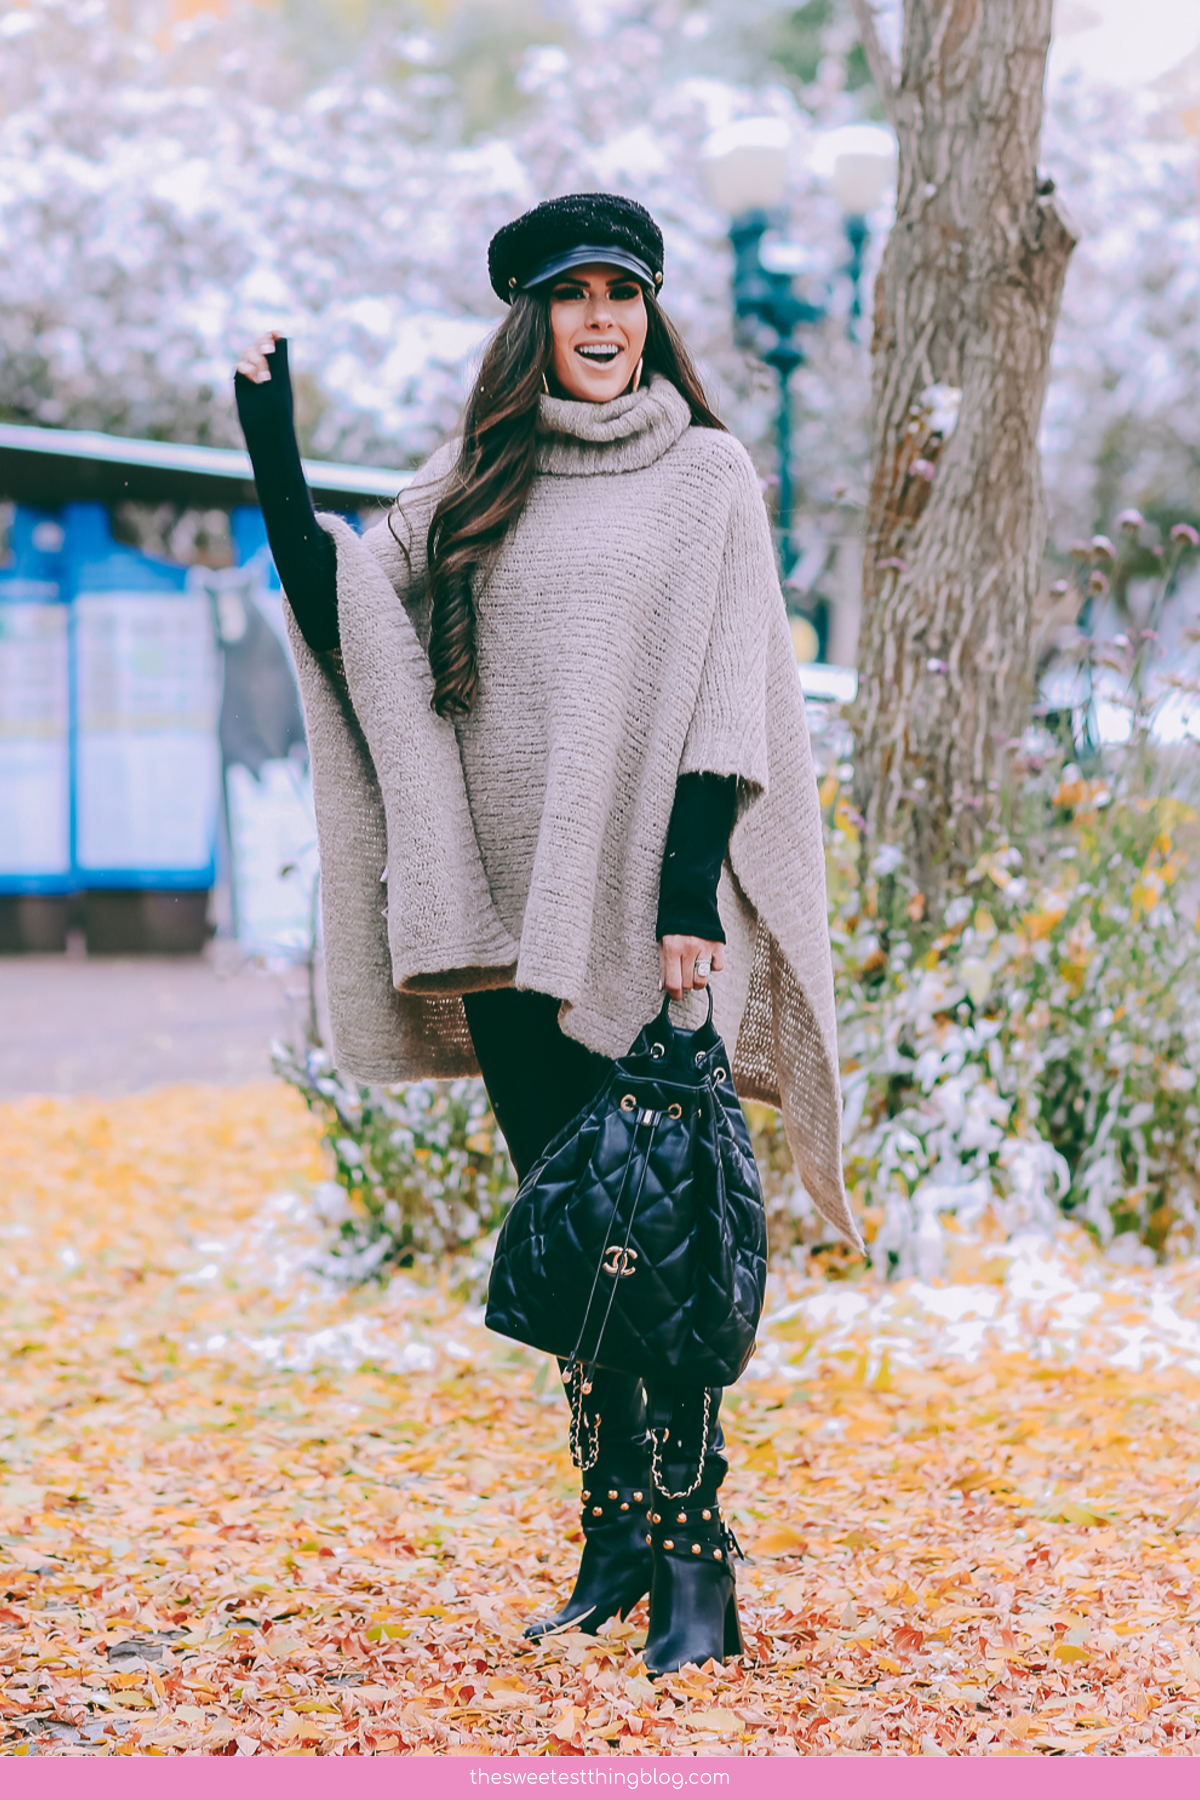 One Of My Favorite Cute Snow Day Outfits In Aspen